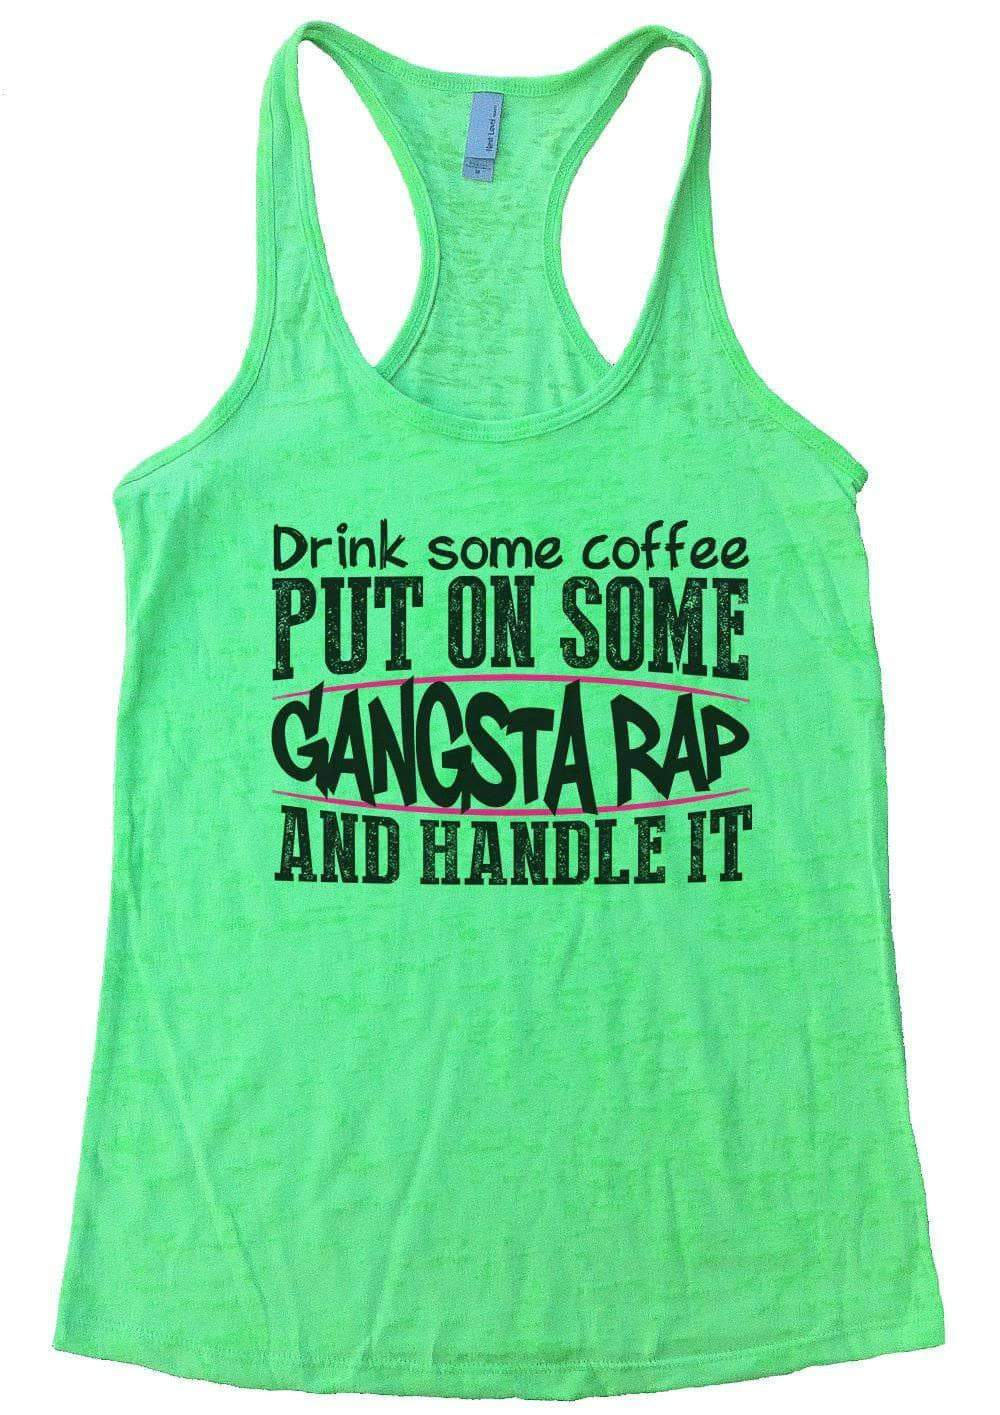 Drink Some Coffee PUT ON SOME GANGSTA RAP AND HANDLE IT Burnout Tank Top By Womens Tank Tops Small Womens Tank Tops Neon Green